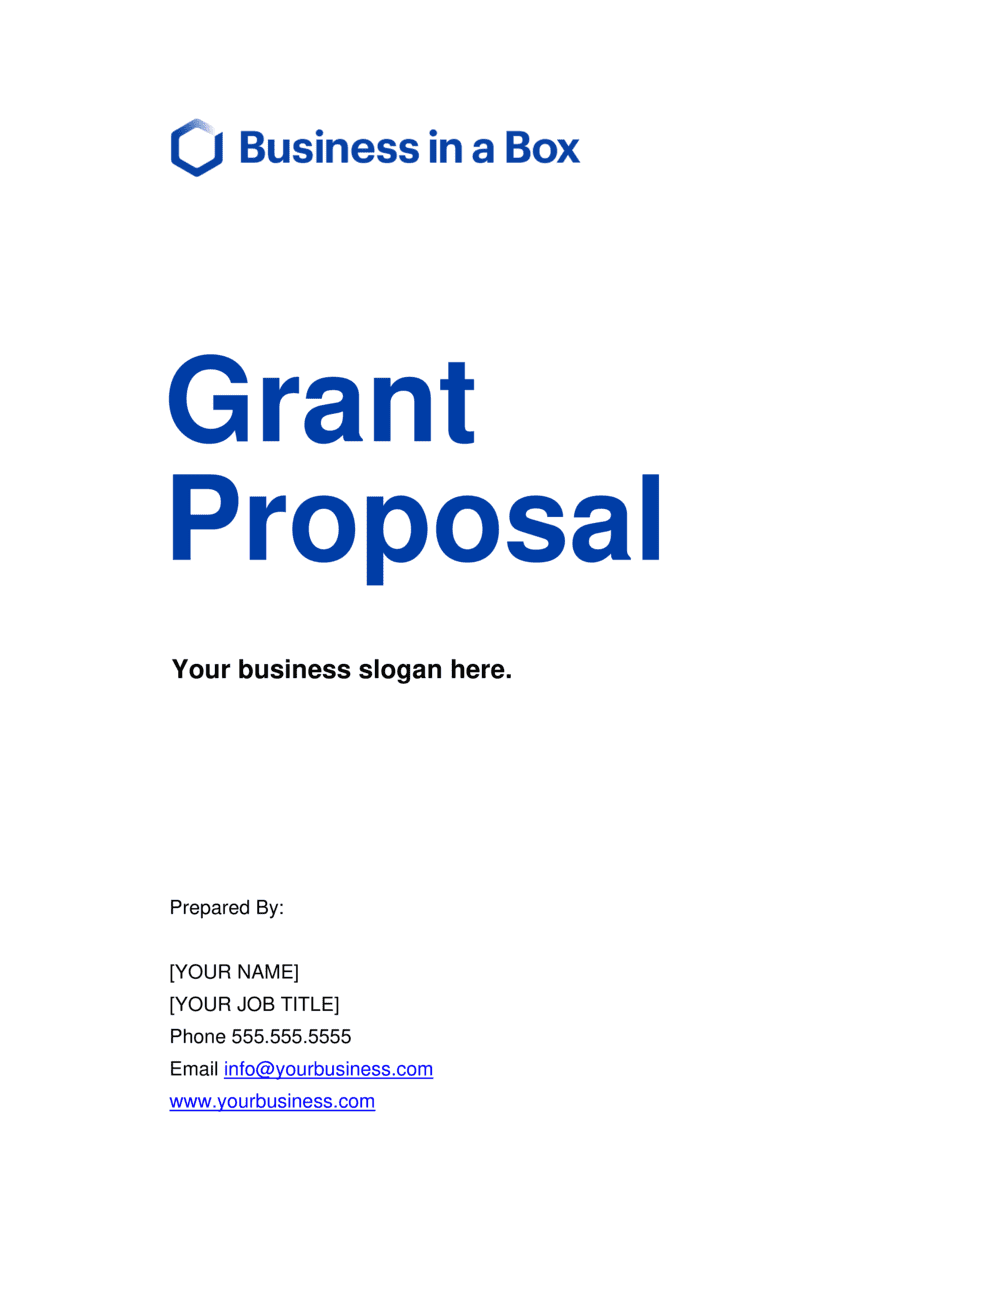 Business-in-a-Box's Grant Proposal Template